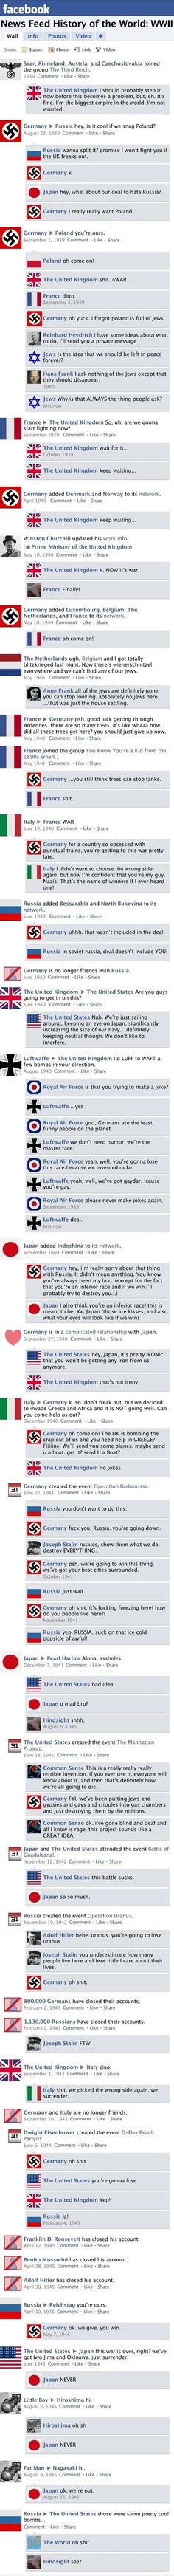 History lesson, Facebook style!